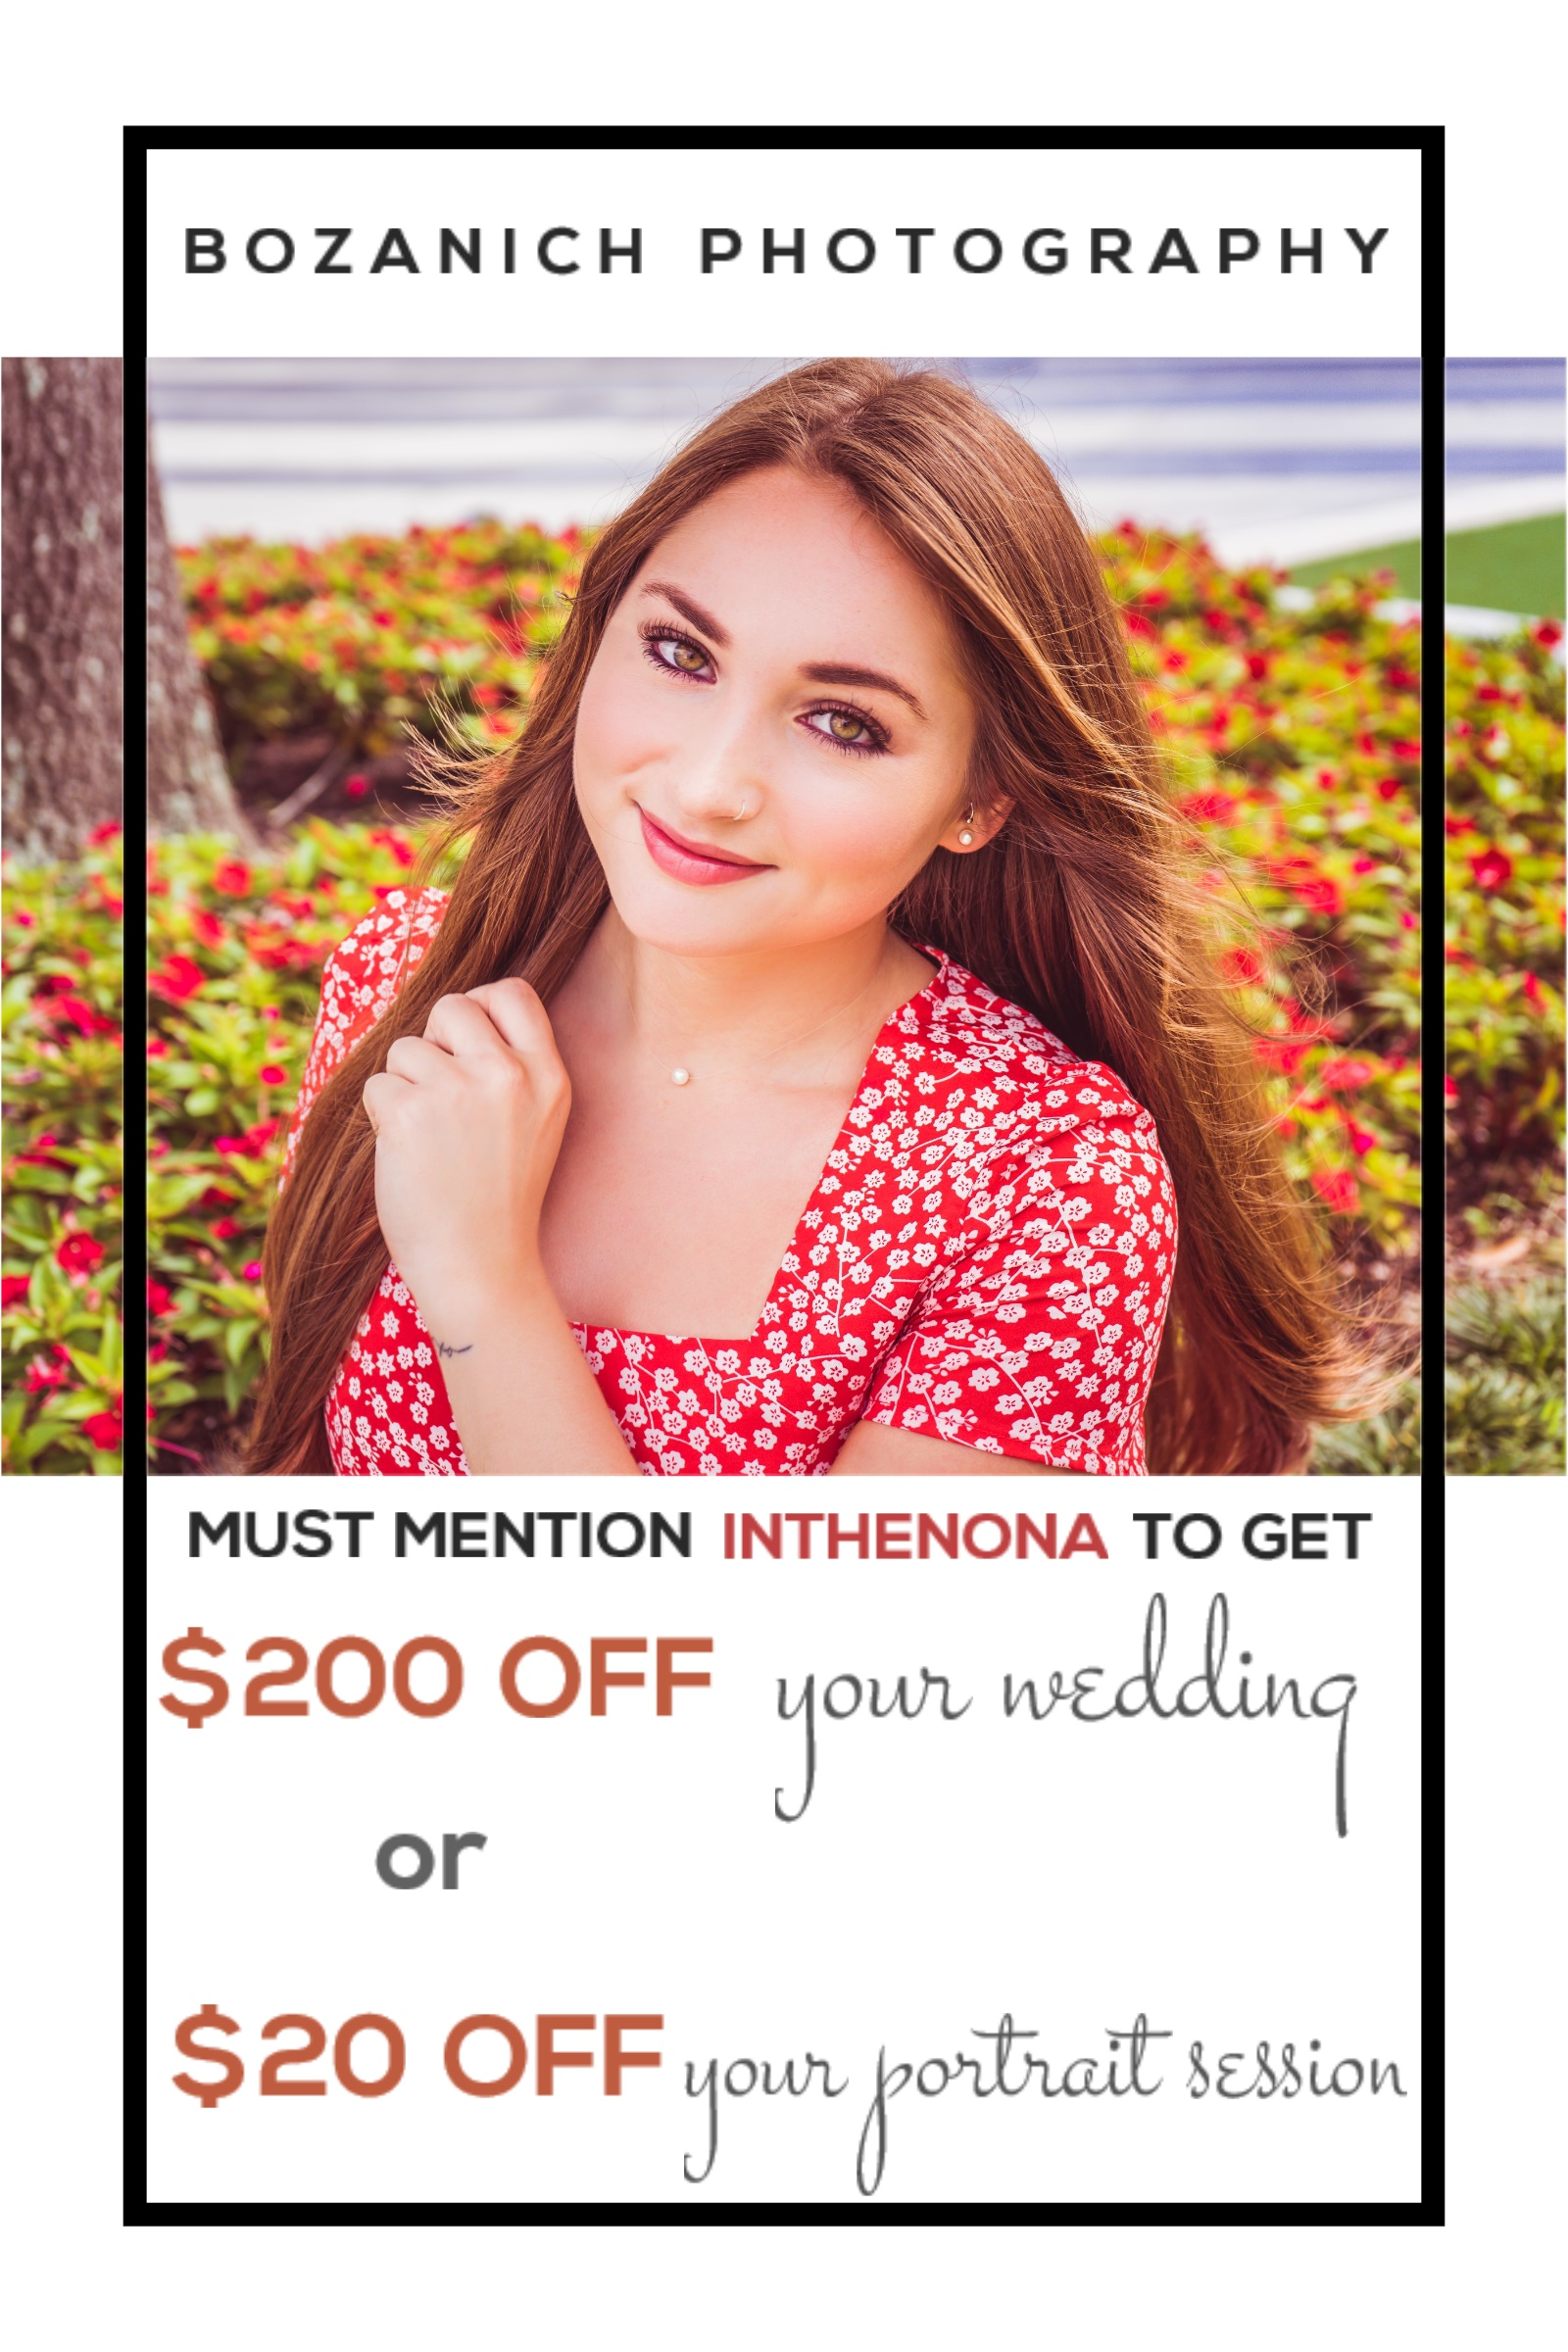 Bozanich Photography: $20 – $200 OFF Your Photography Booking!